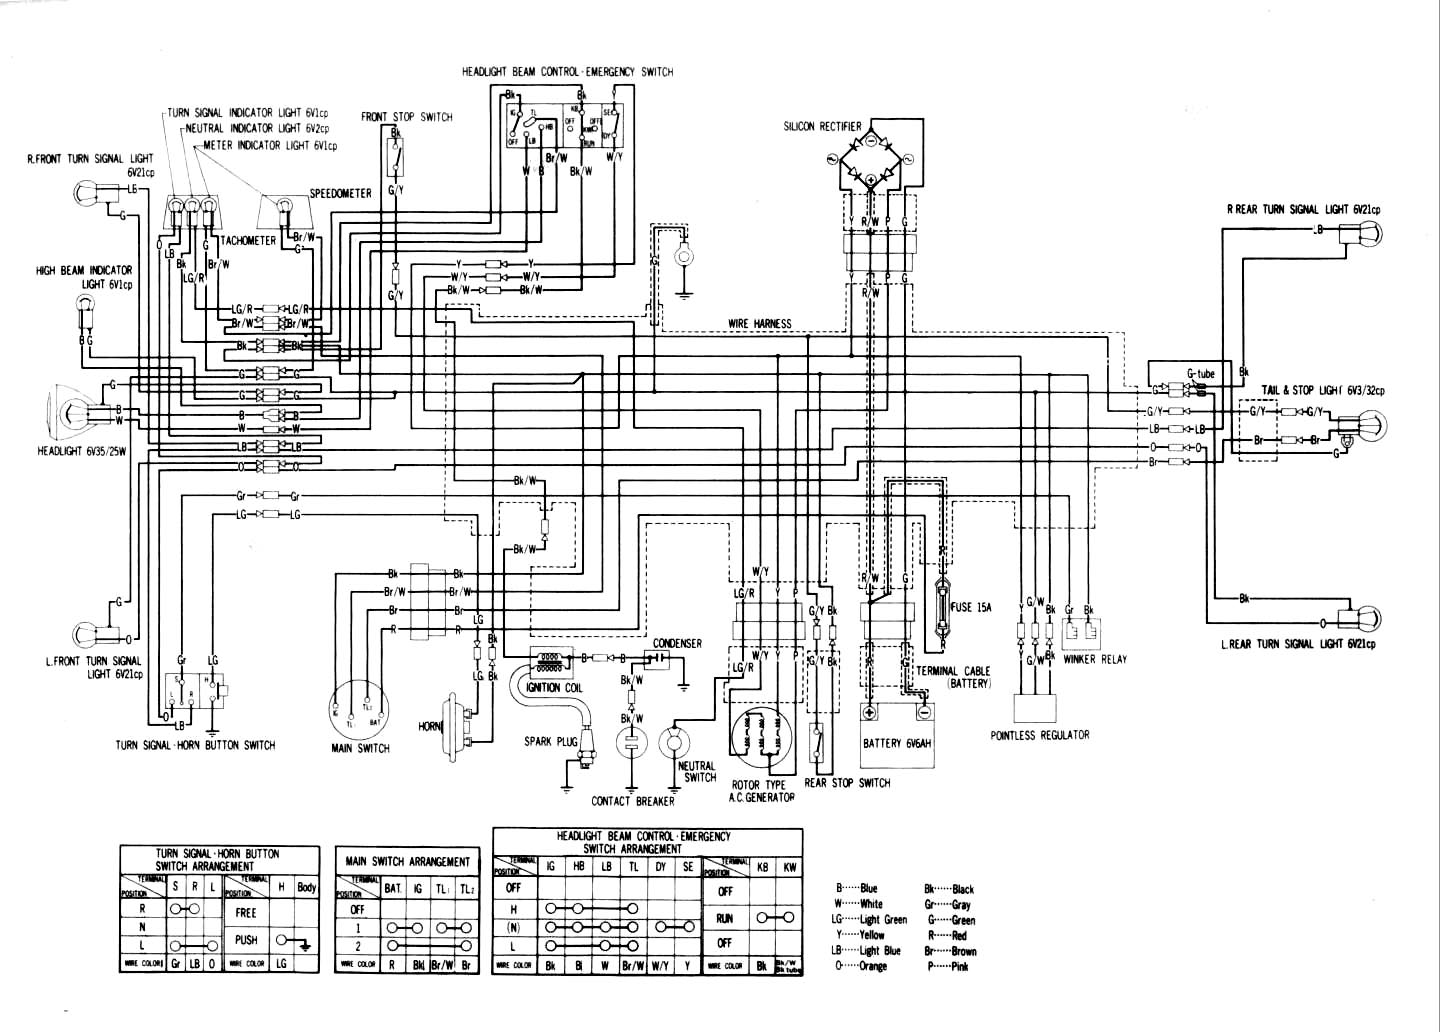 wiring diagrams rh oregonmotorcycleparts com honda crf 80 wiring diagram